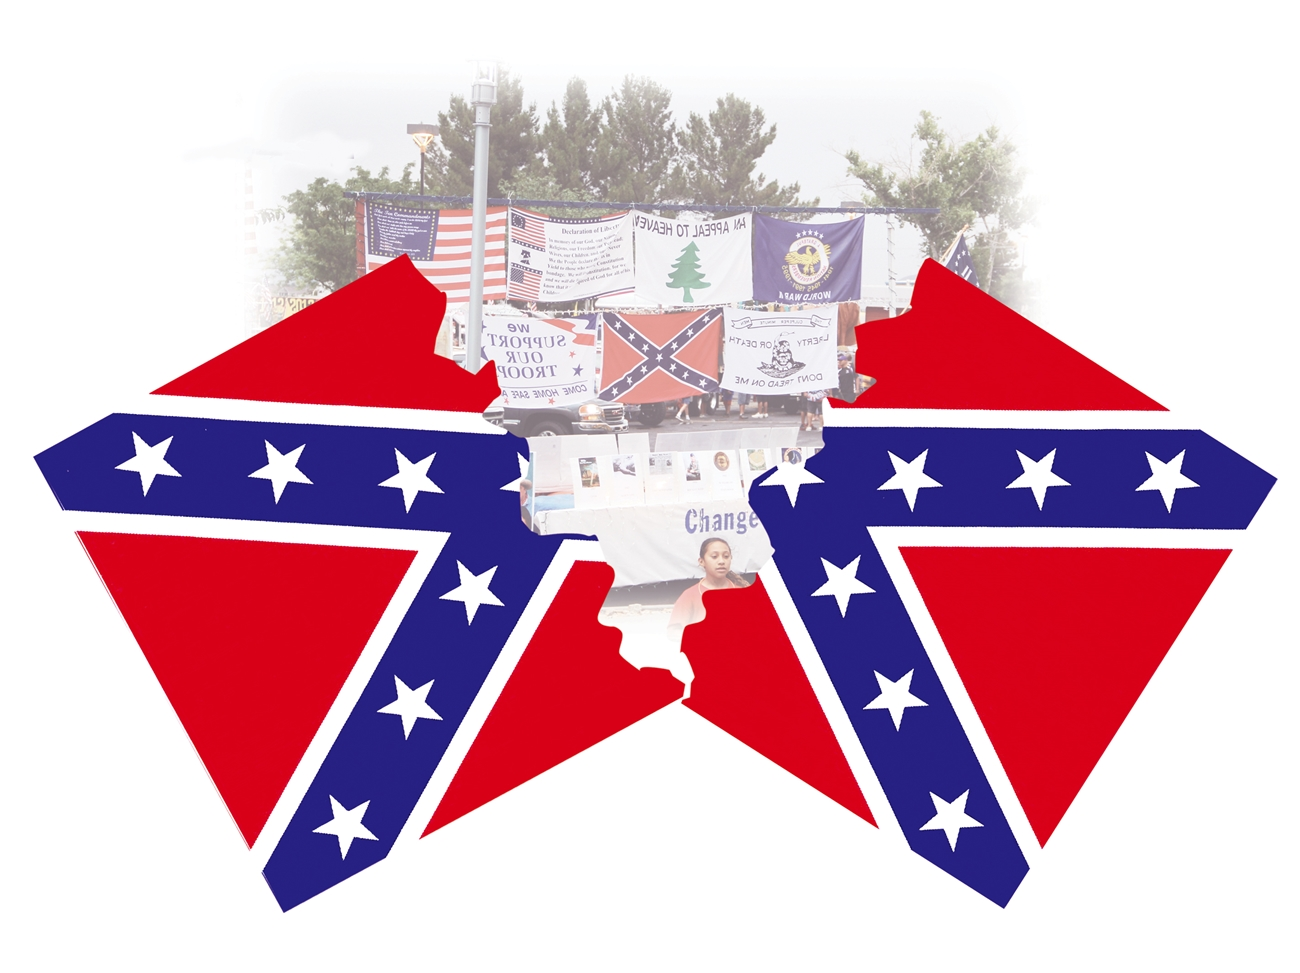 The Confederate Battle Flag MUST GO